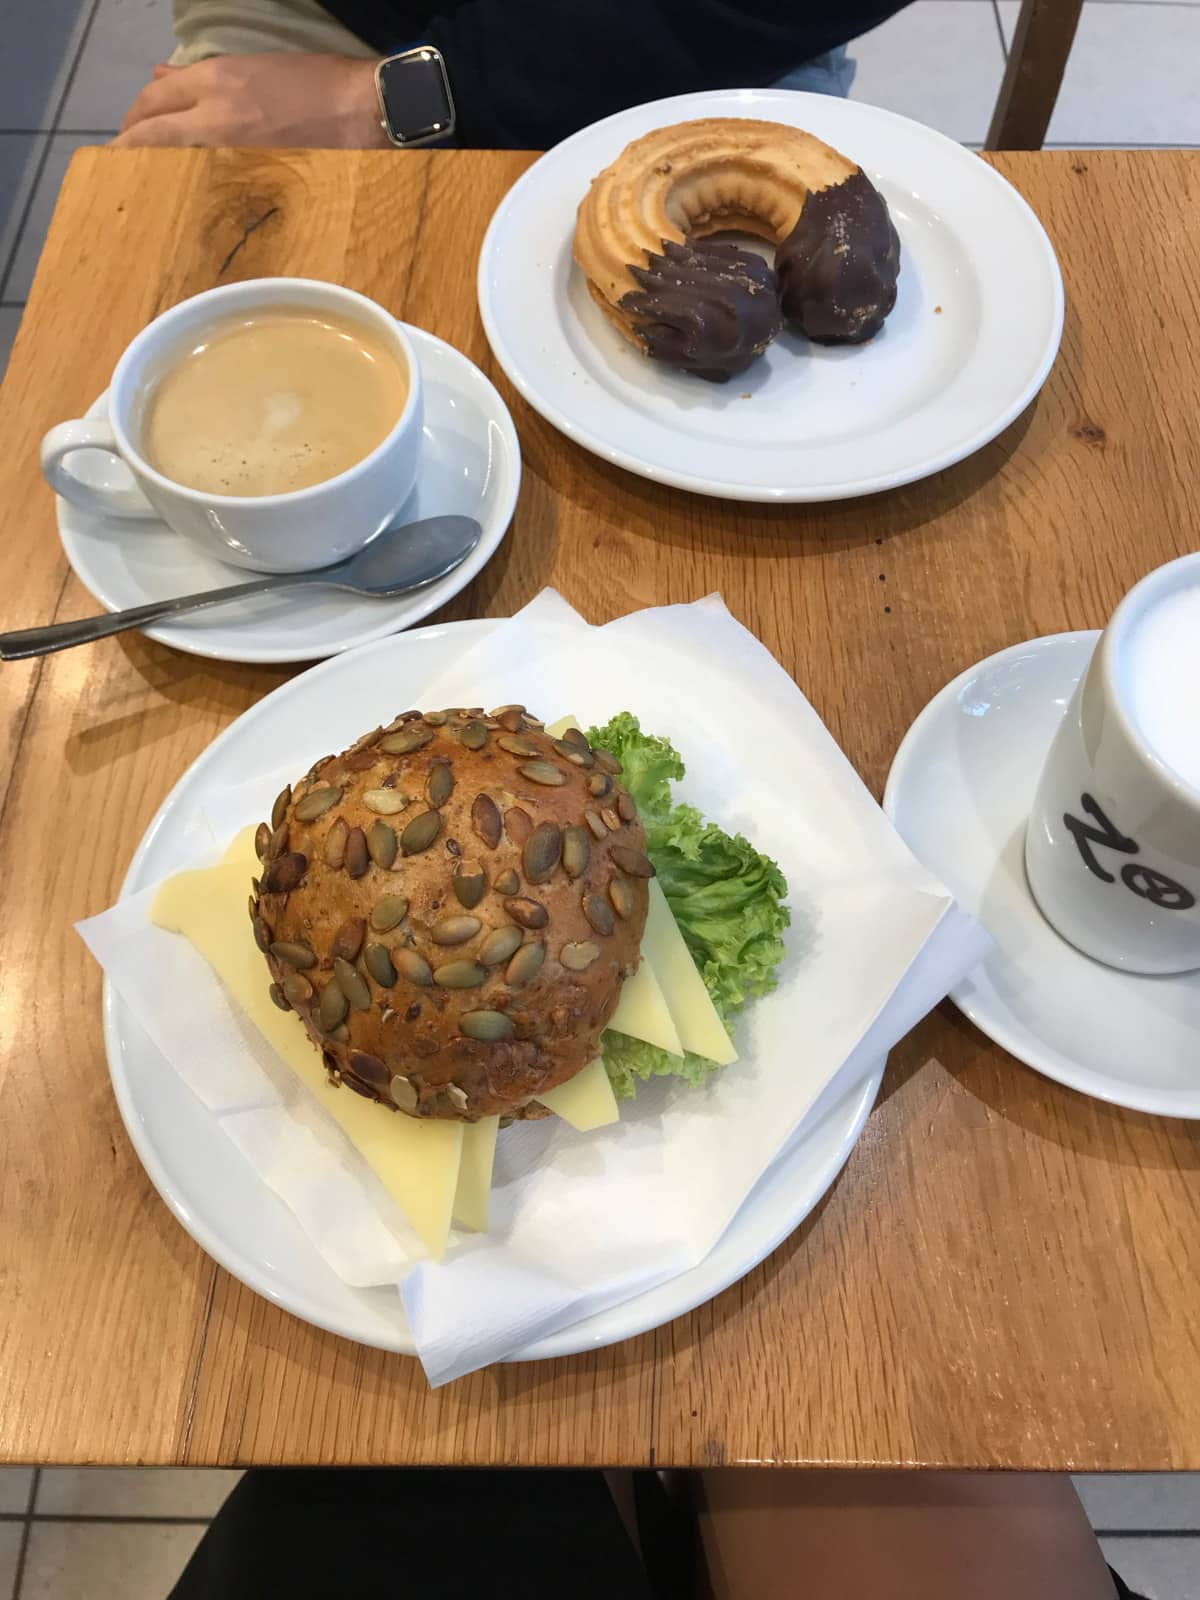 A small brown table with servings of coffee and two plates – one with a seed bun filled with cheese and lettuce, and the other with a chocolate dipped cookie